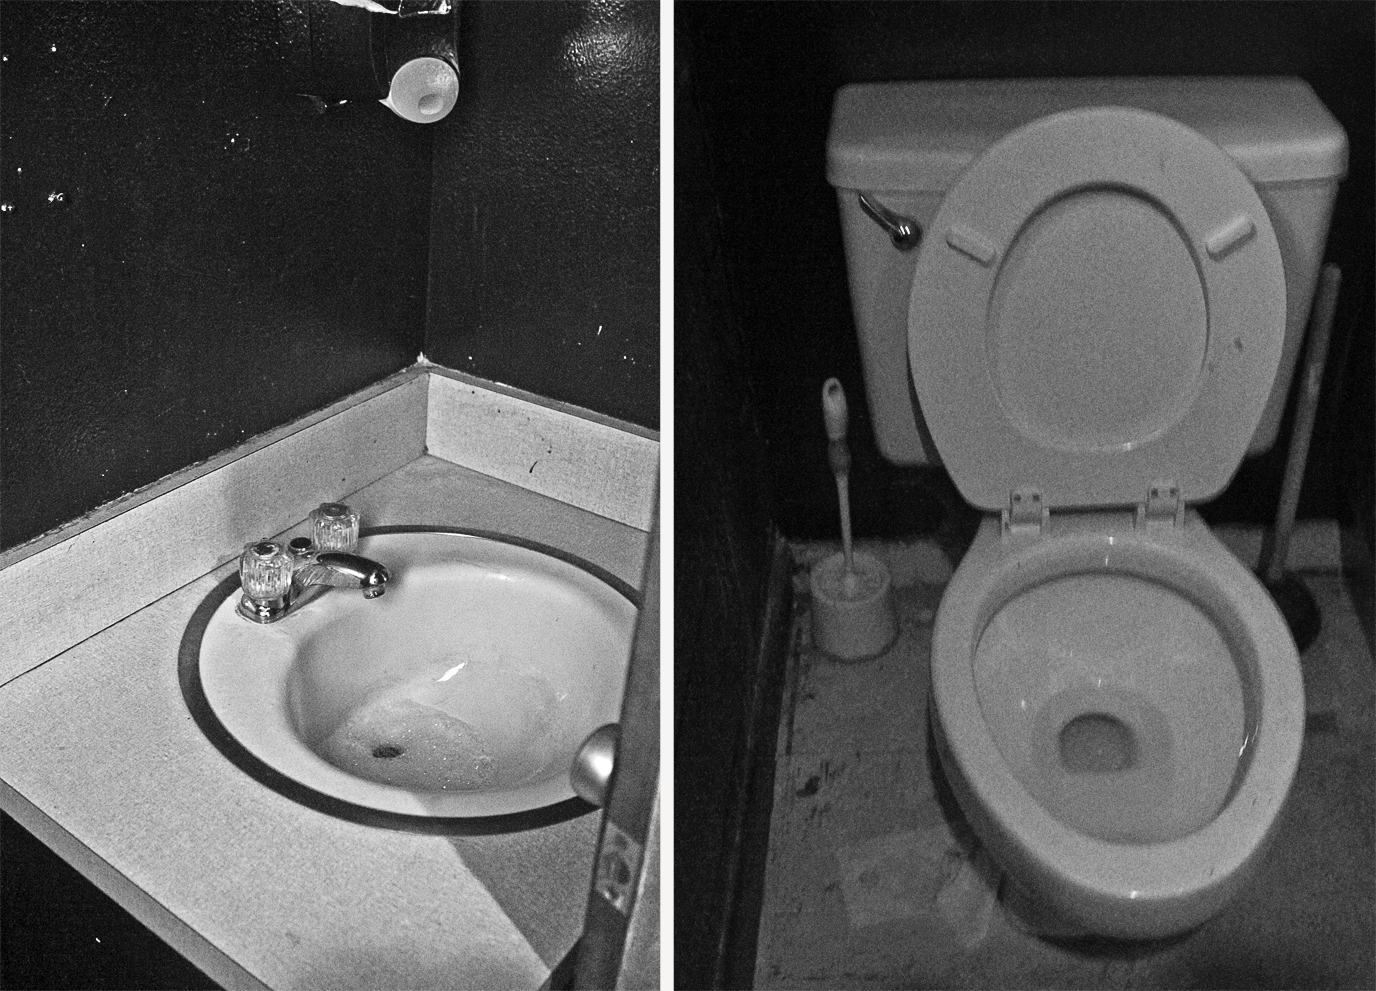 The men's room at Recycled.